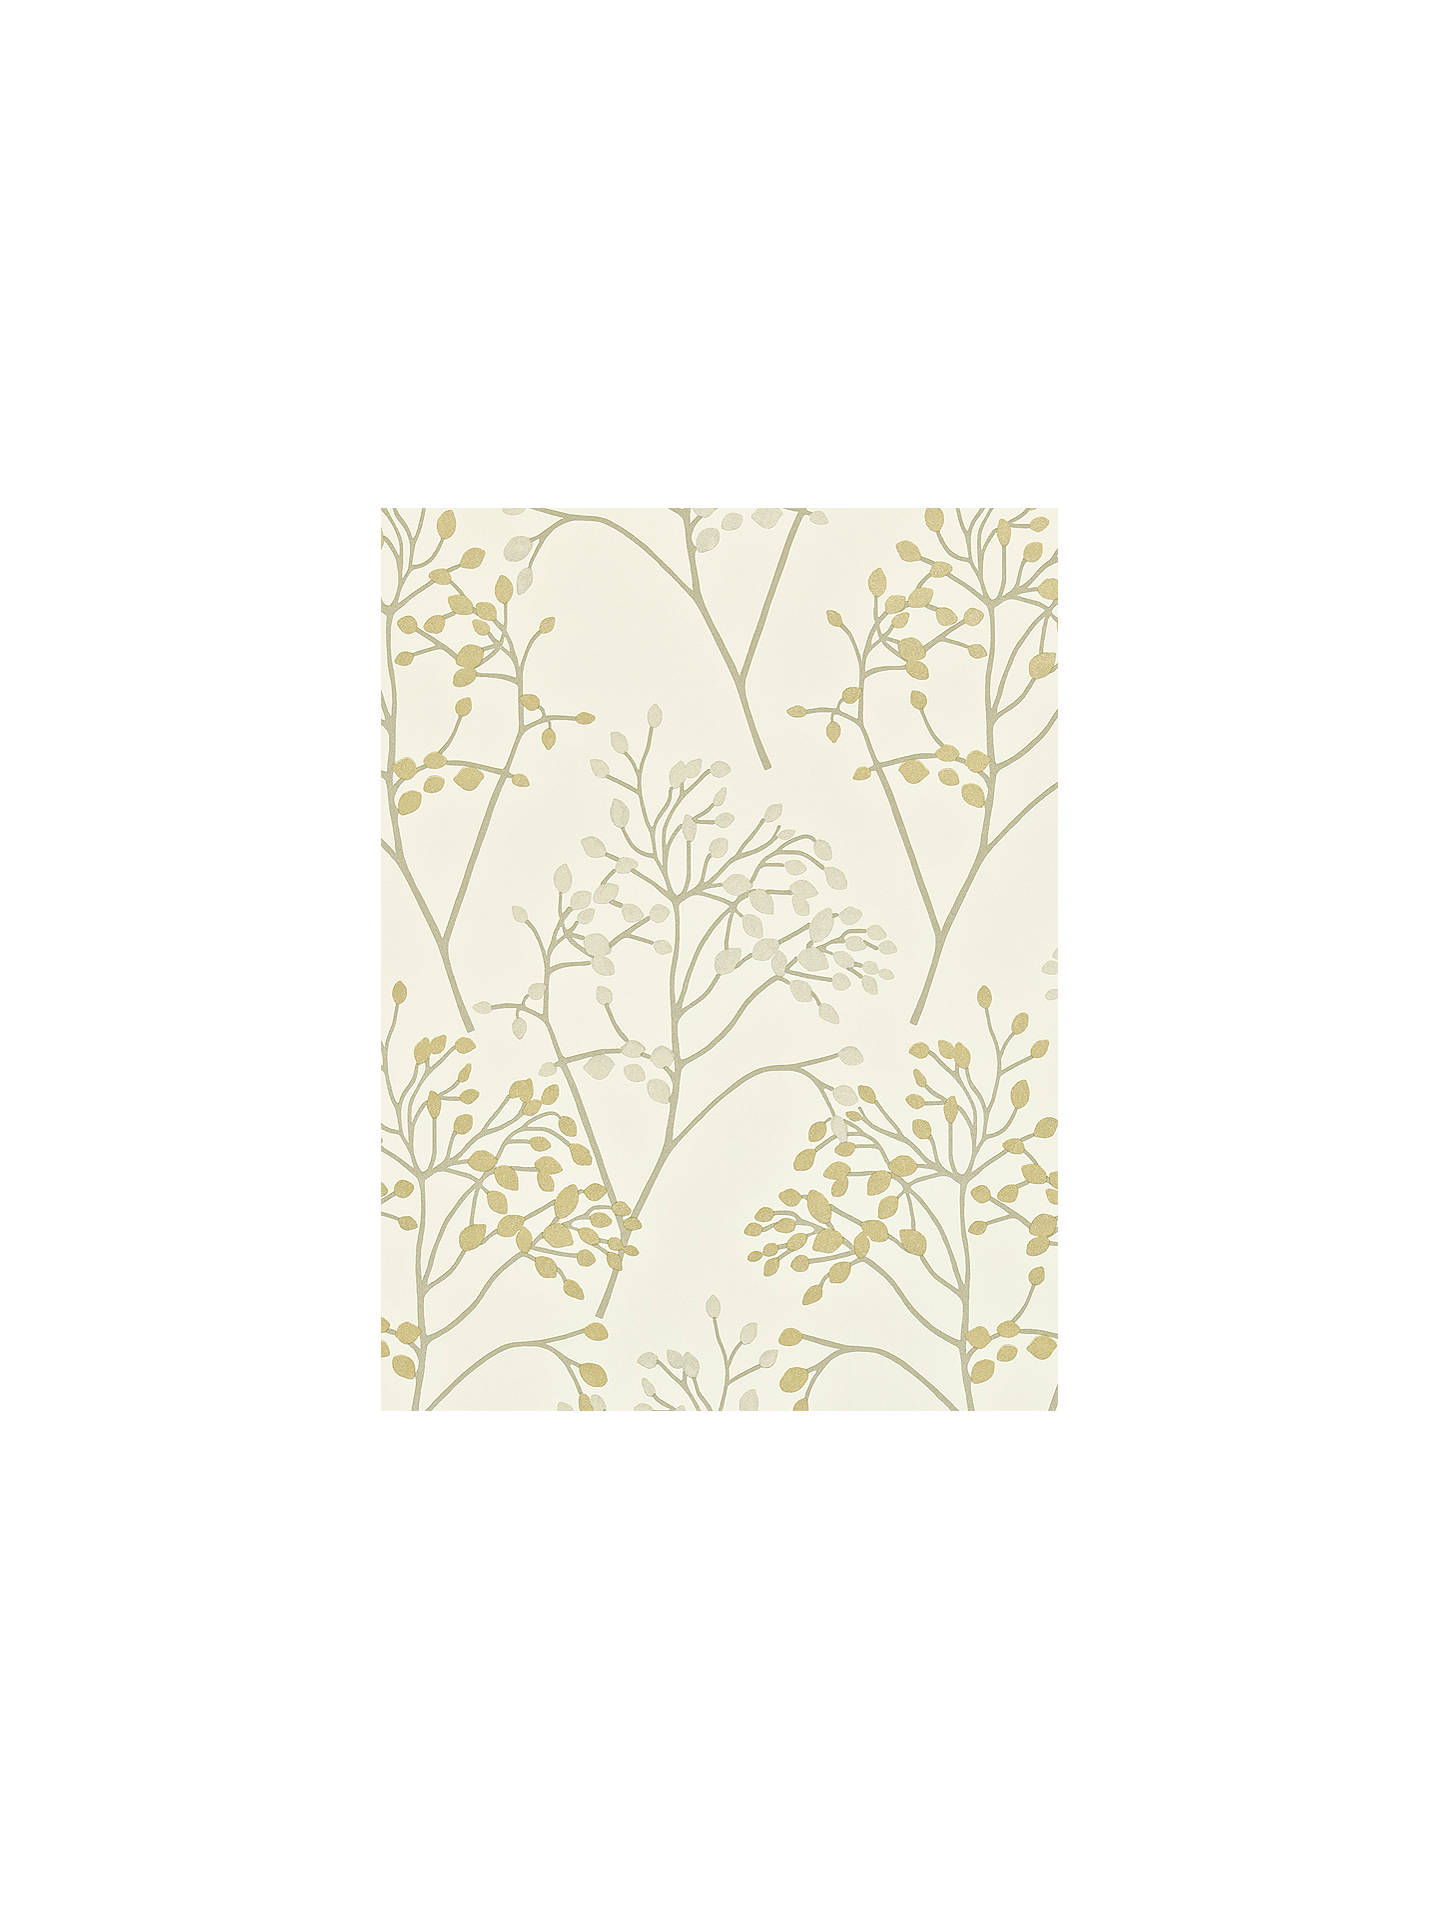 Buy Sanderson Pippin Paste the Wall Wallpaper, DMAD212836 Online at johnlewis.com